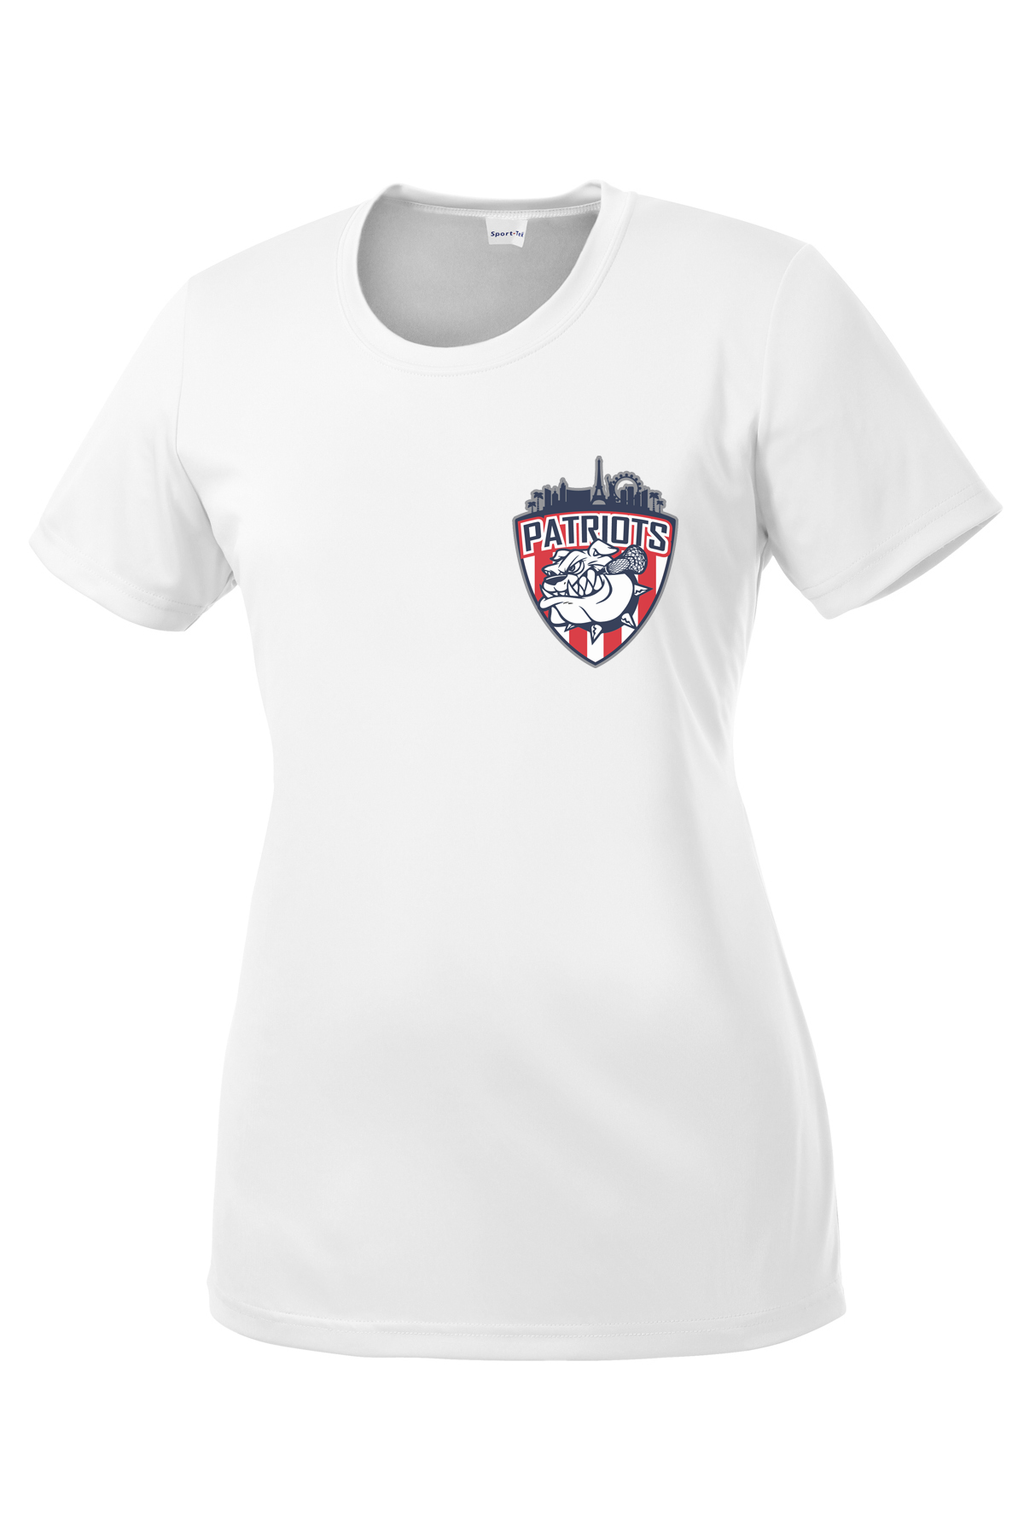 Las Vegas Patriots Women's Performance T-Shirt